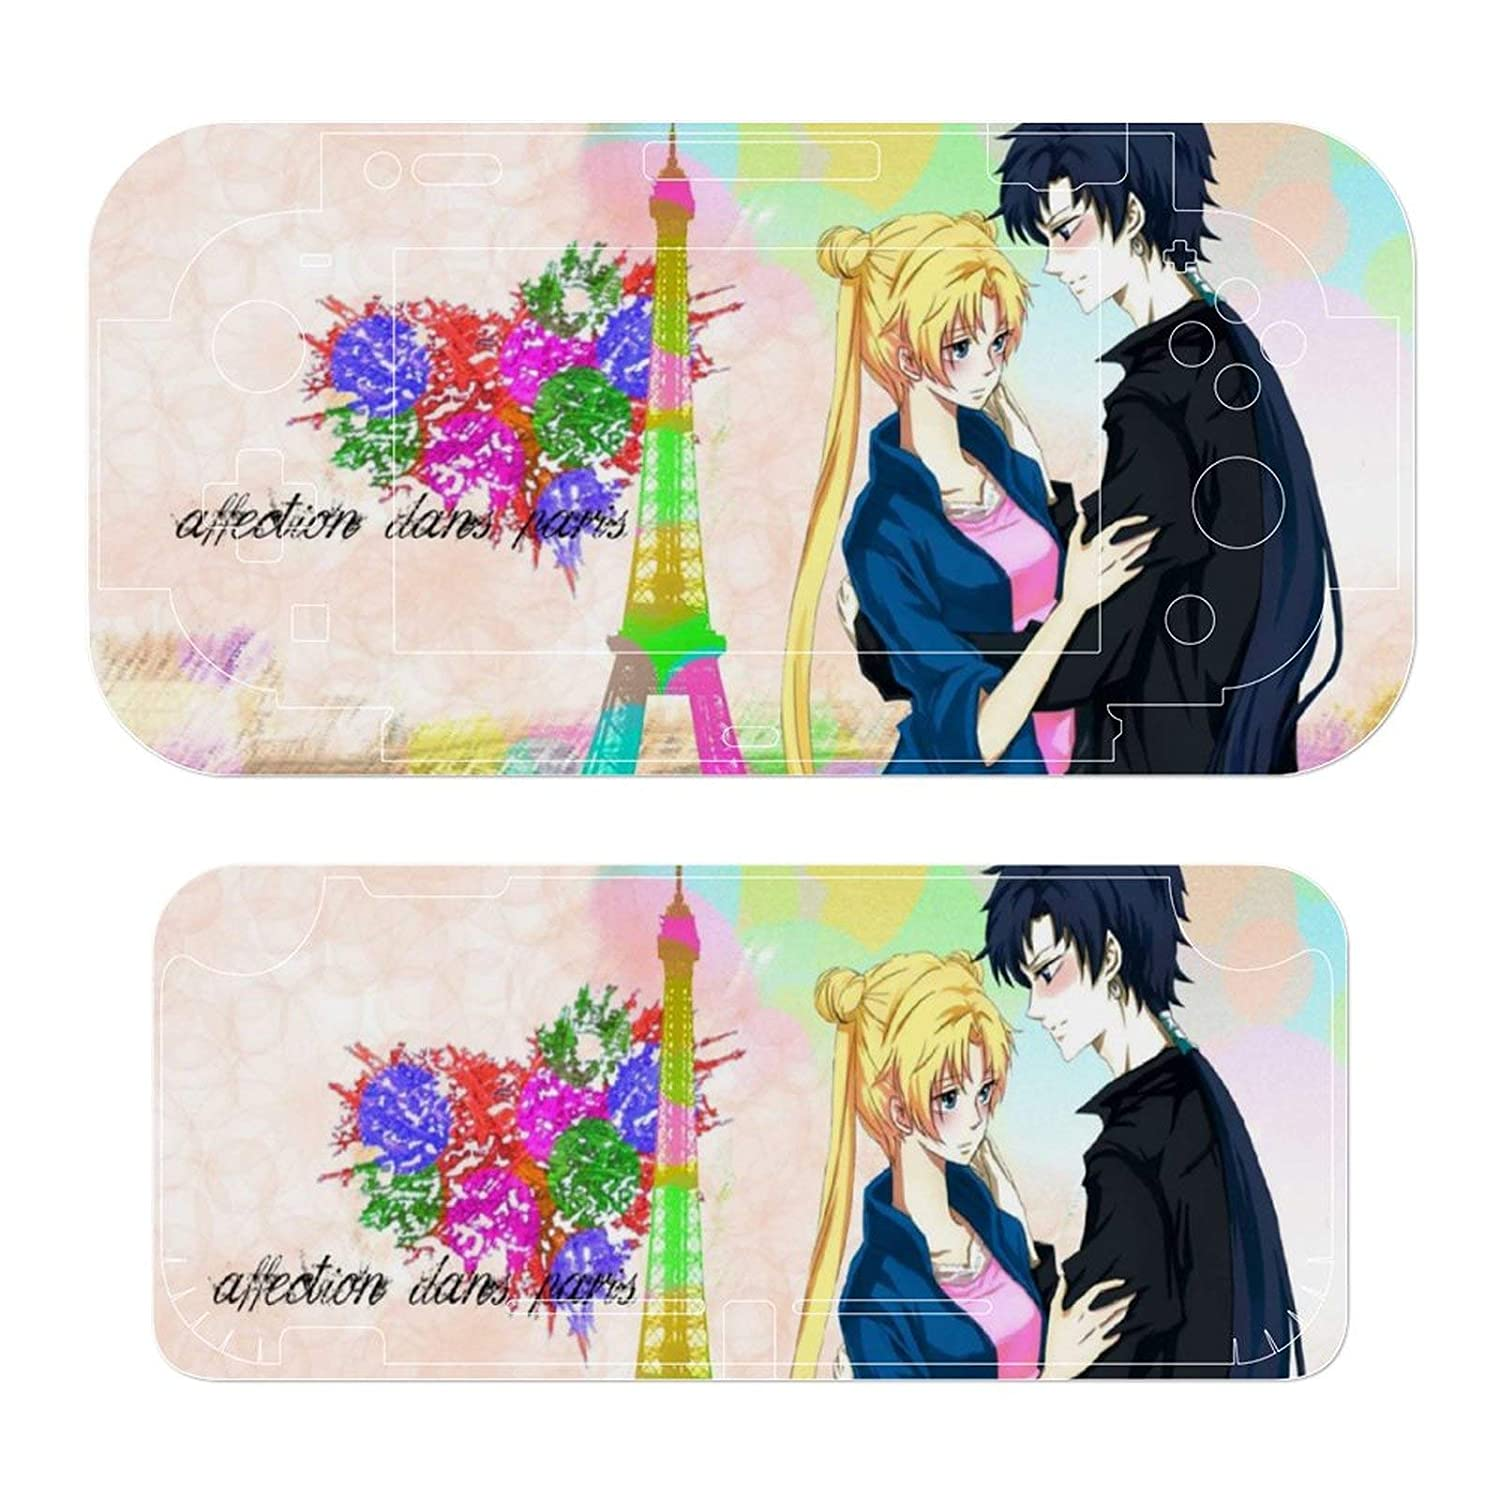 Large Mouse Pad for Office and Home Sailor Moon Japanese Anime for Gaming Computer & Laptop & PC